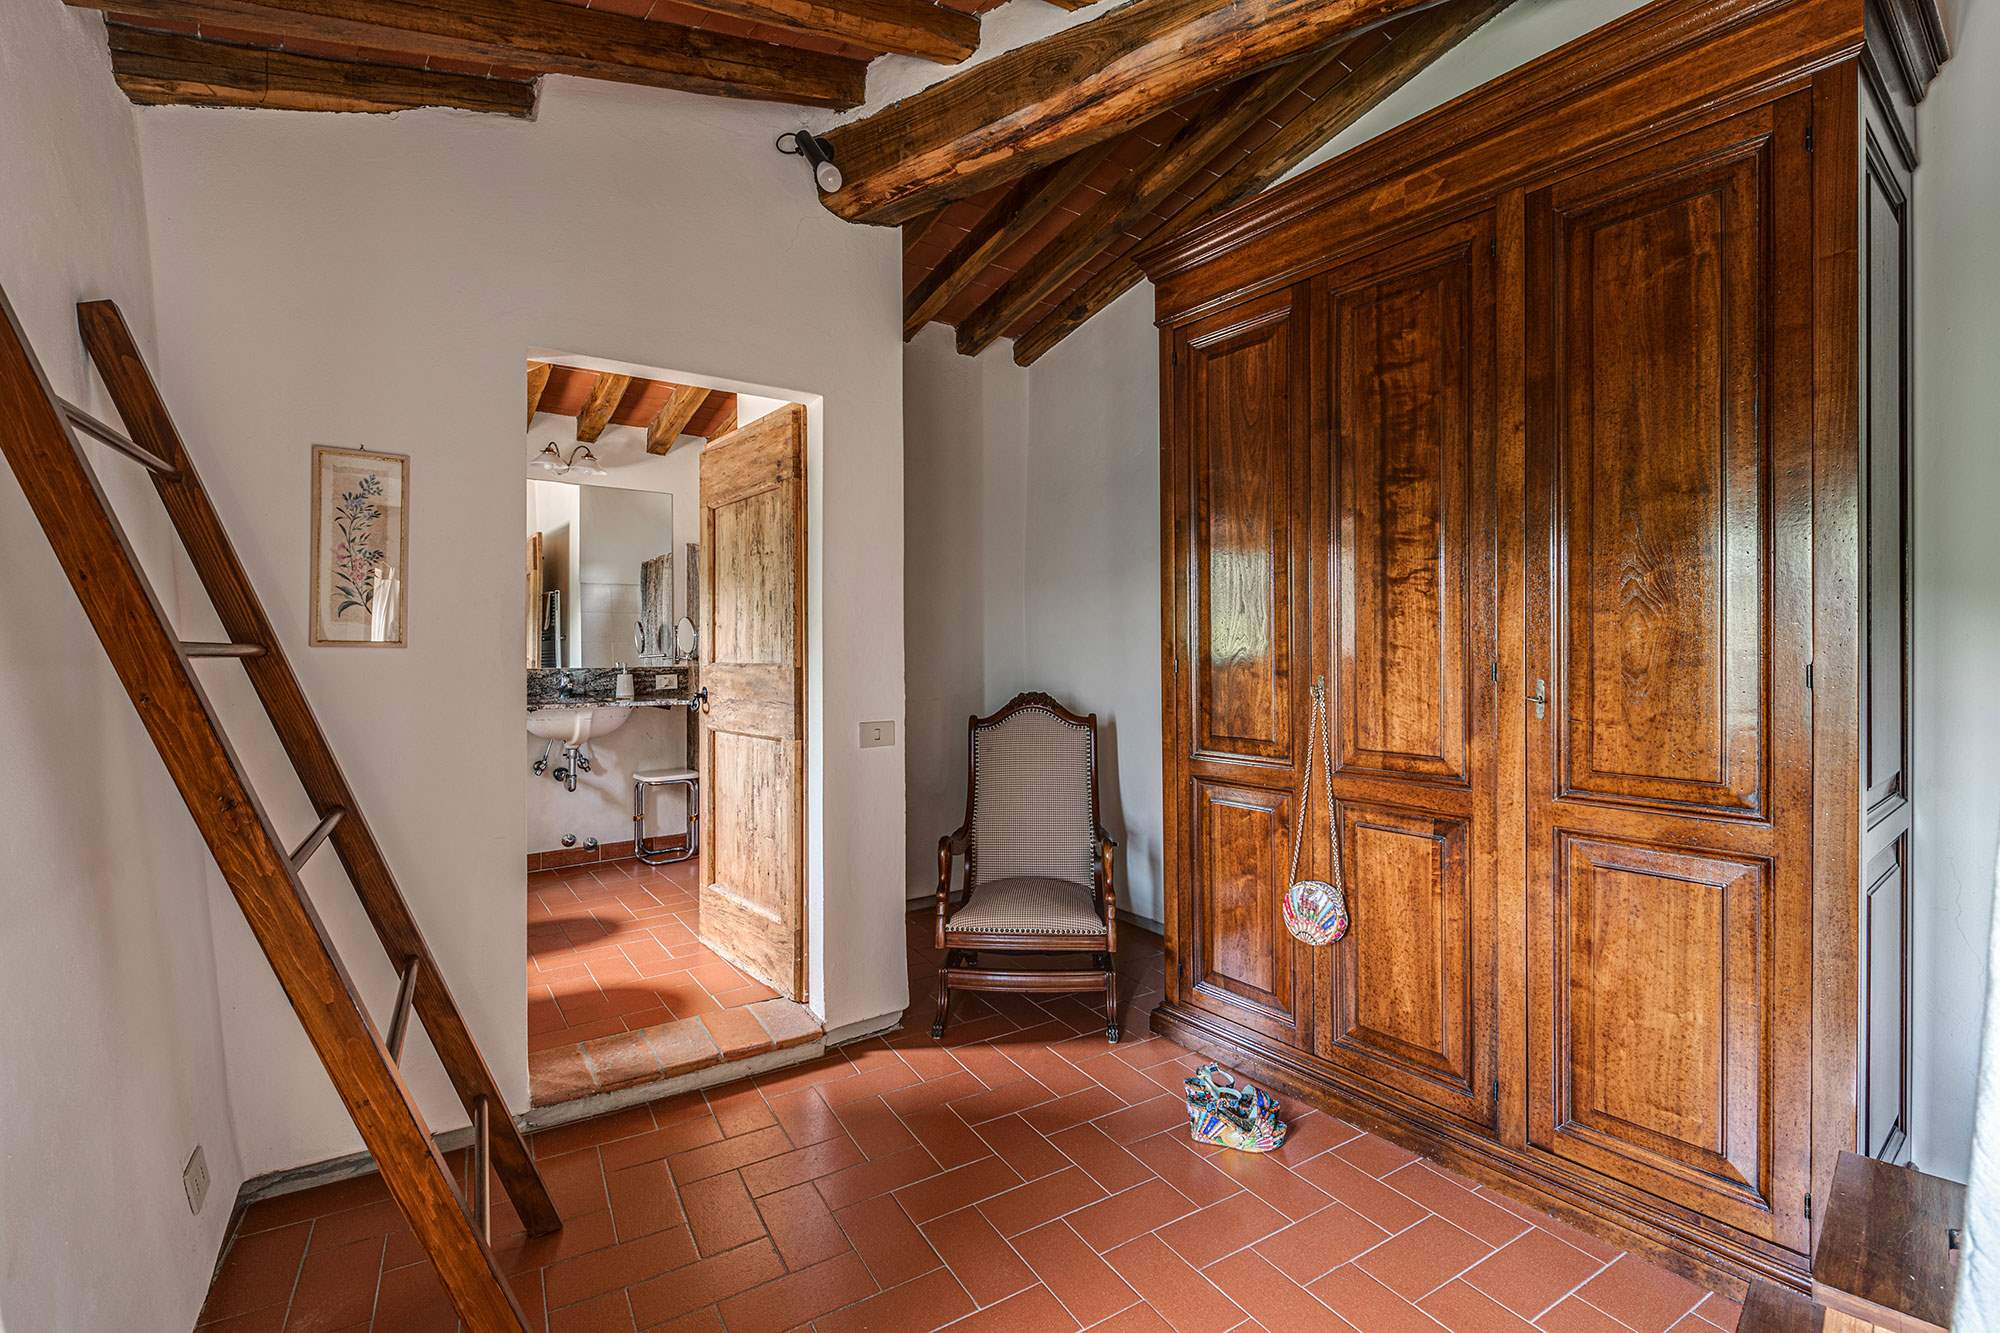 Villa Claudia, 5 Bedroom rate, 5 bedroom villa in Chianti & Countryside, Tuscany Photo #28